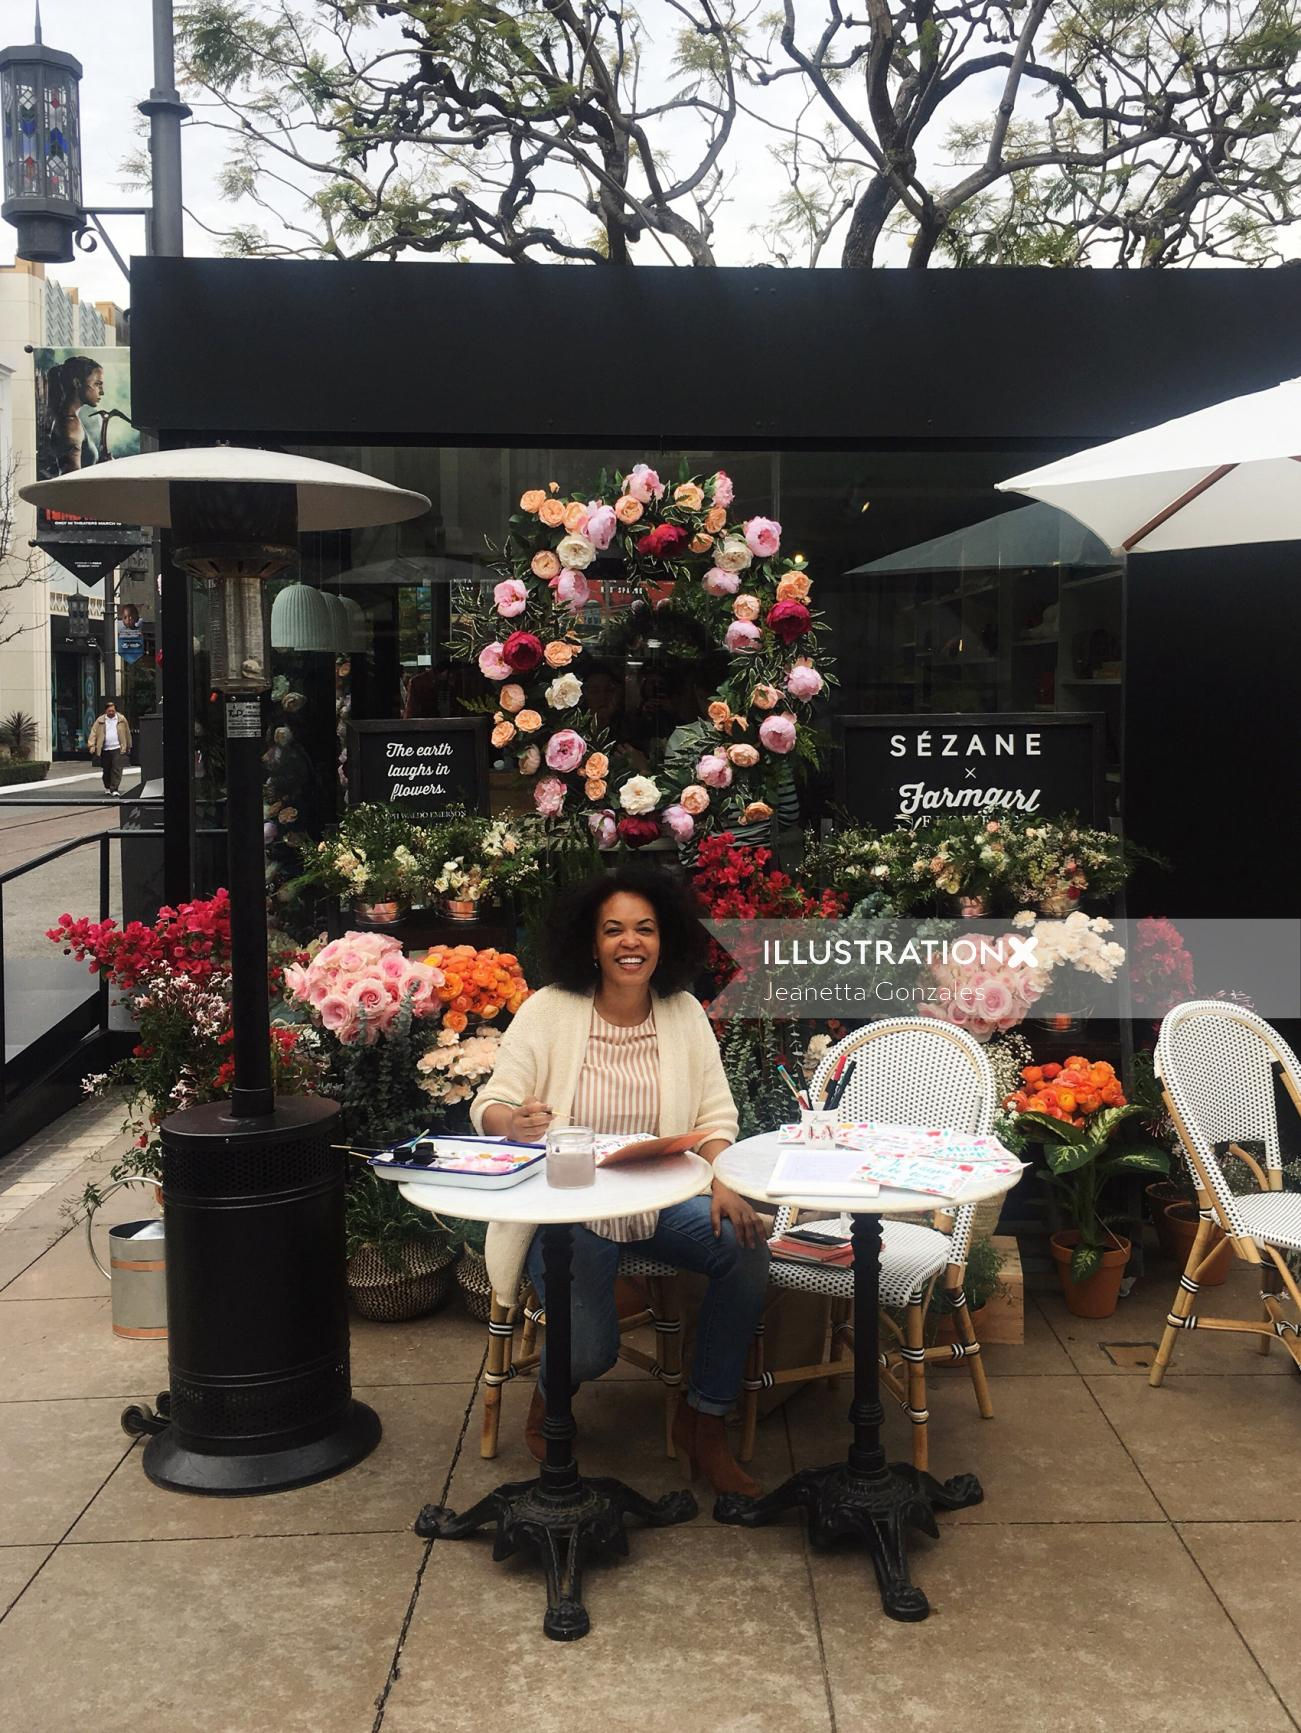 Live drawing for Sezanne Pop Up Shop at the Grove shopping mall in Los Angeles.